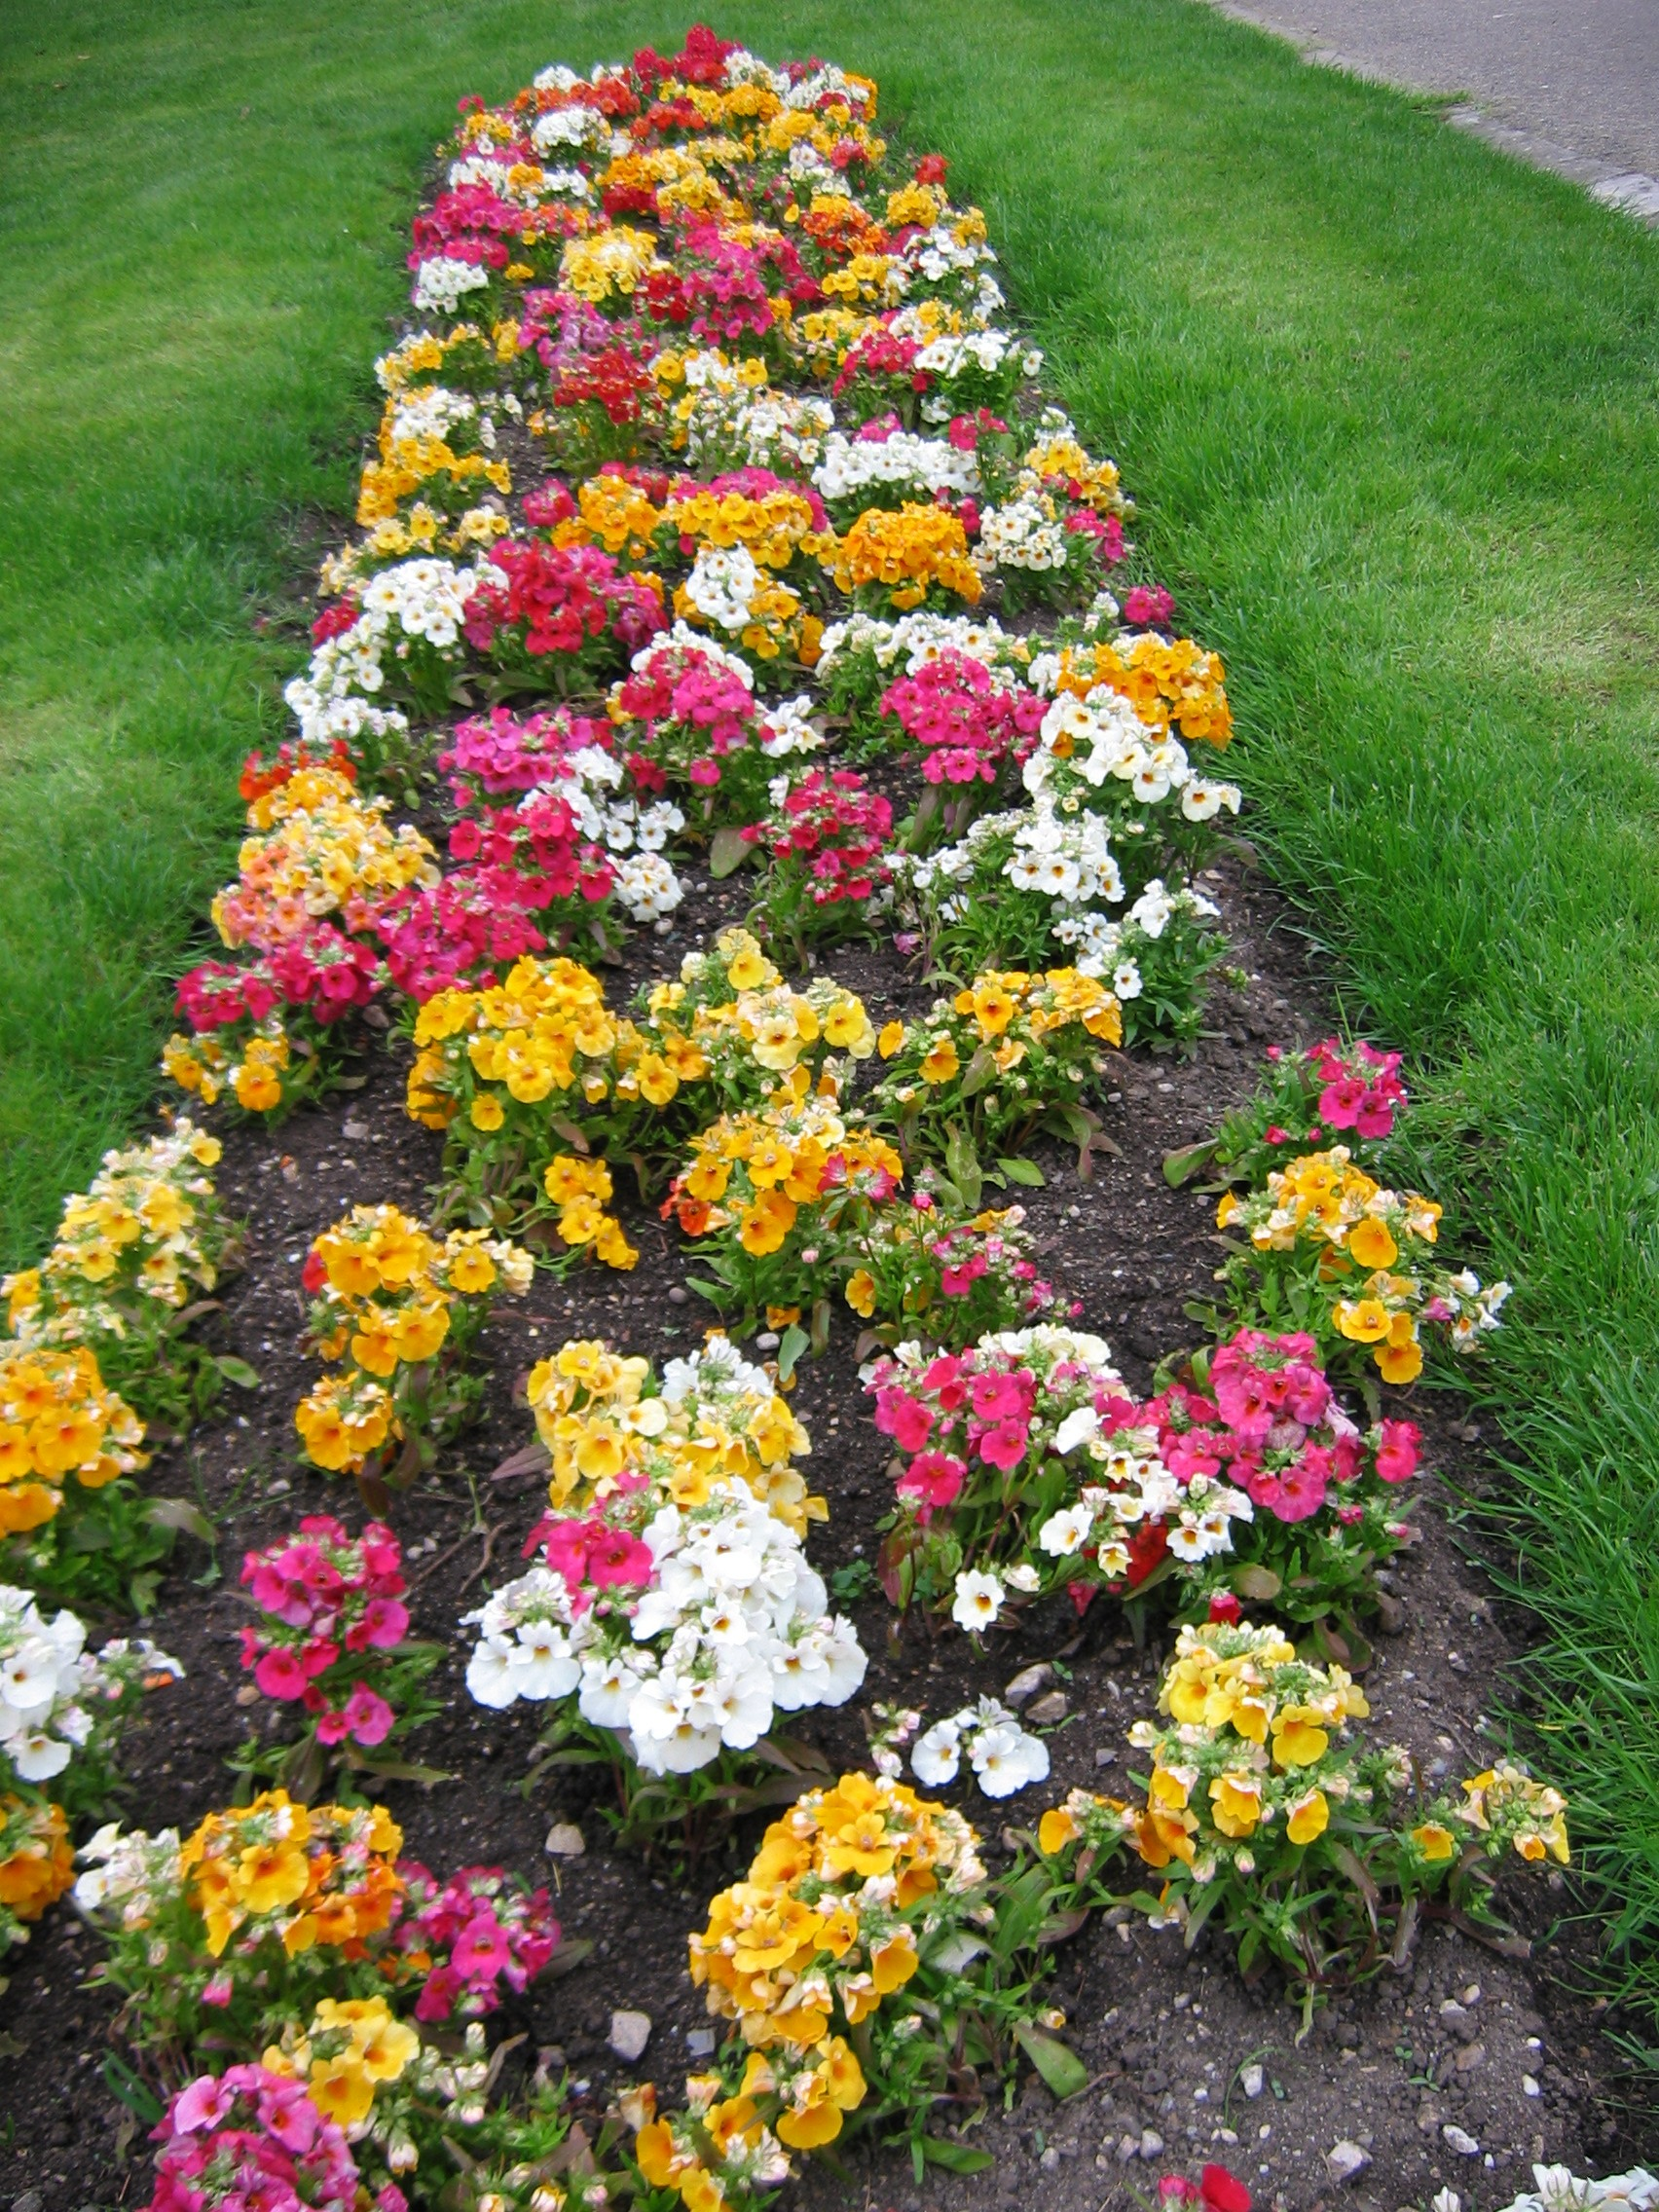 Flower bed designs flower beds and bed designs on pinterest for Best plants for flower beds